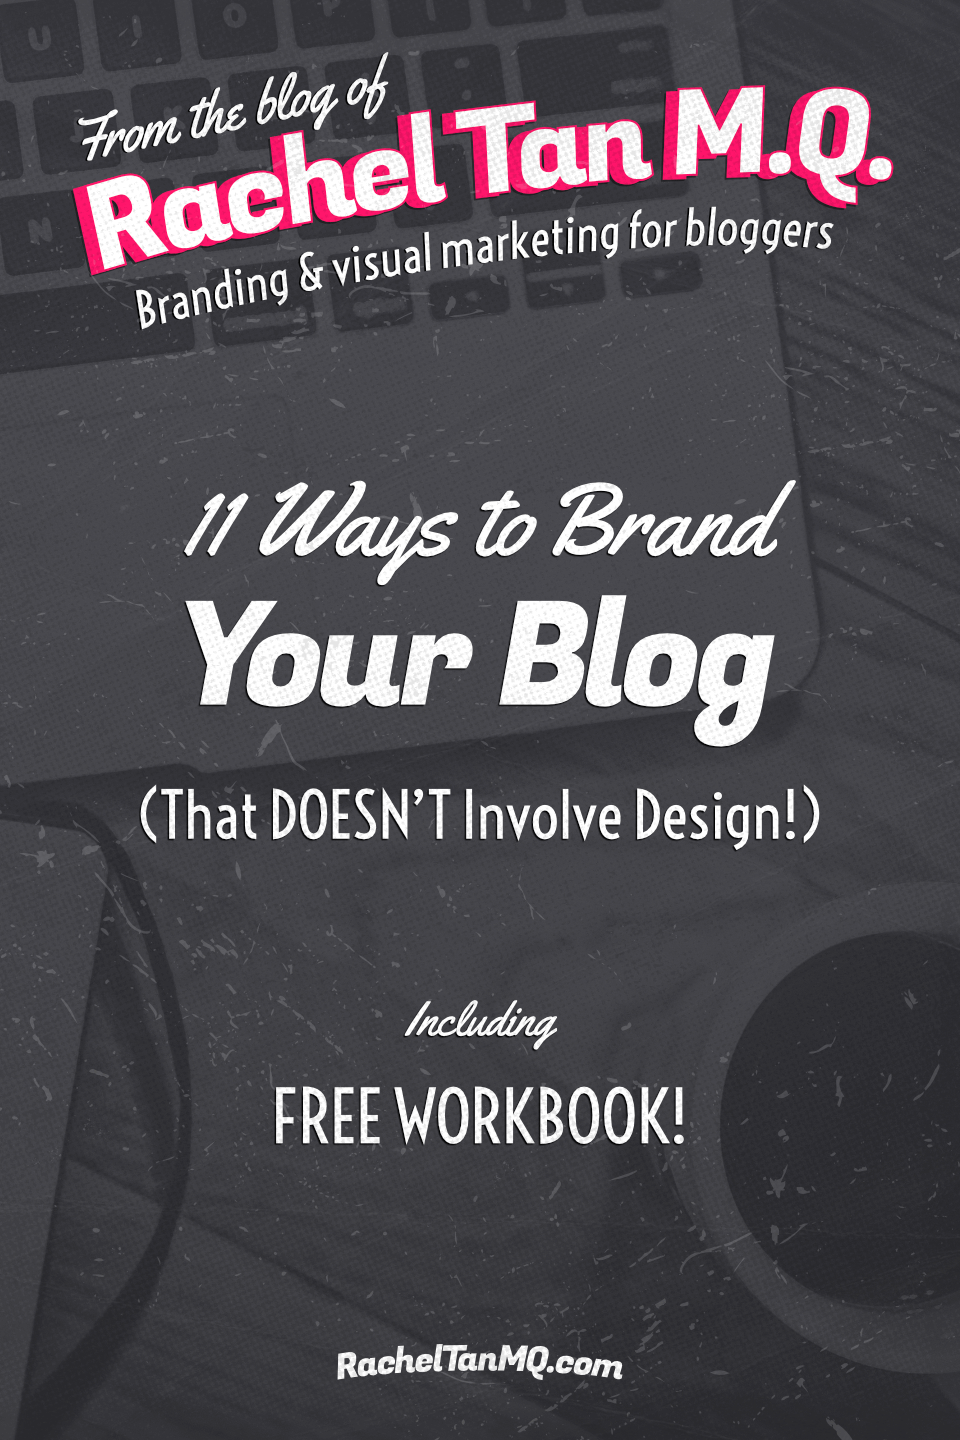 Before you hire a designer or DIY a logo for your blog, put some thought into your overall brand strategy!